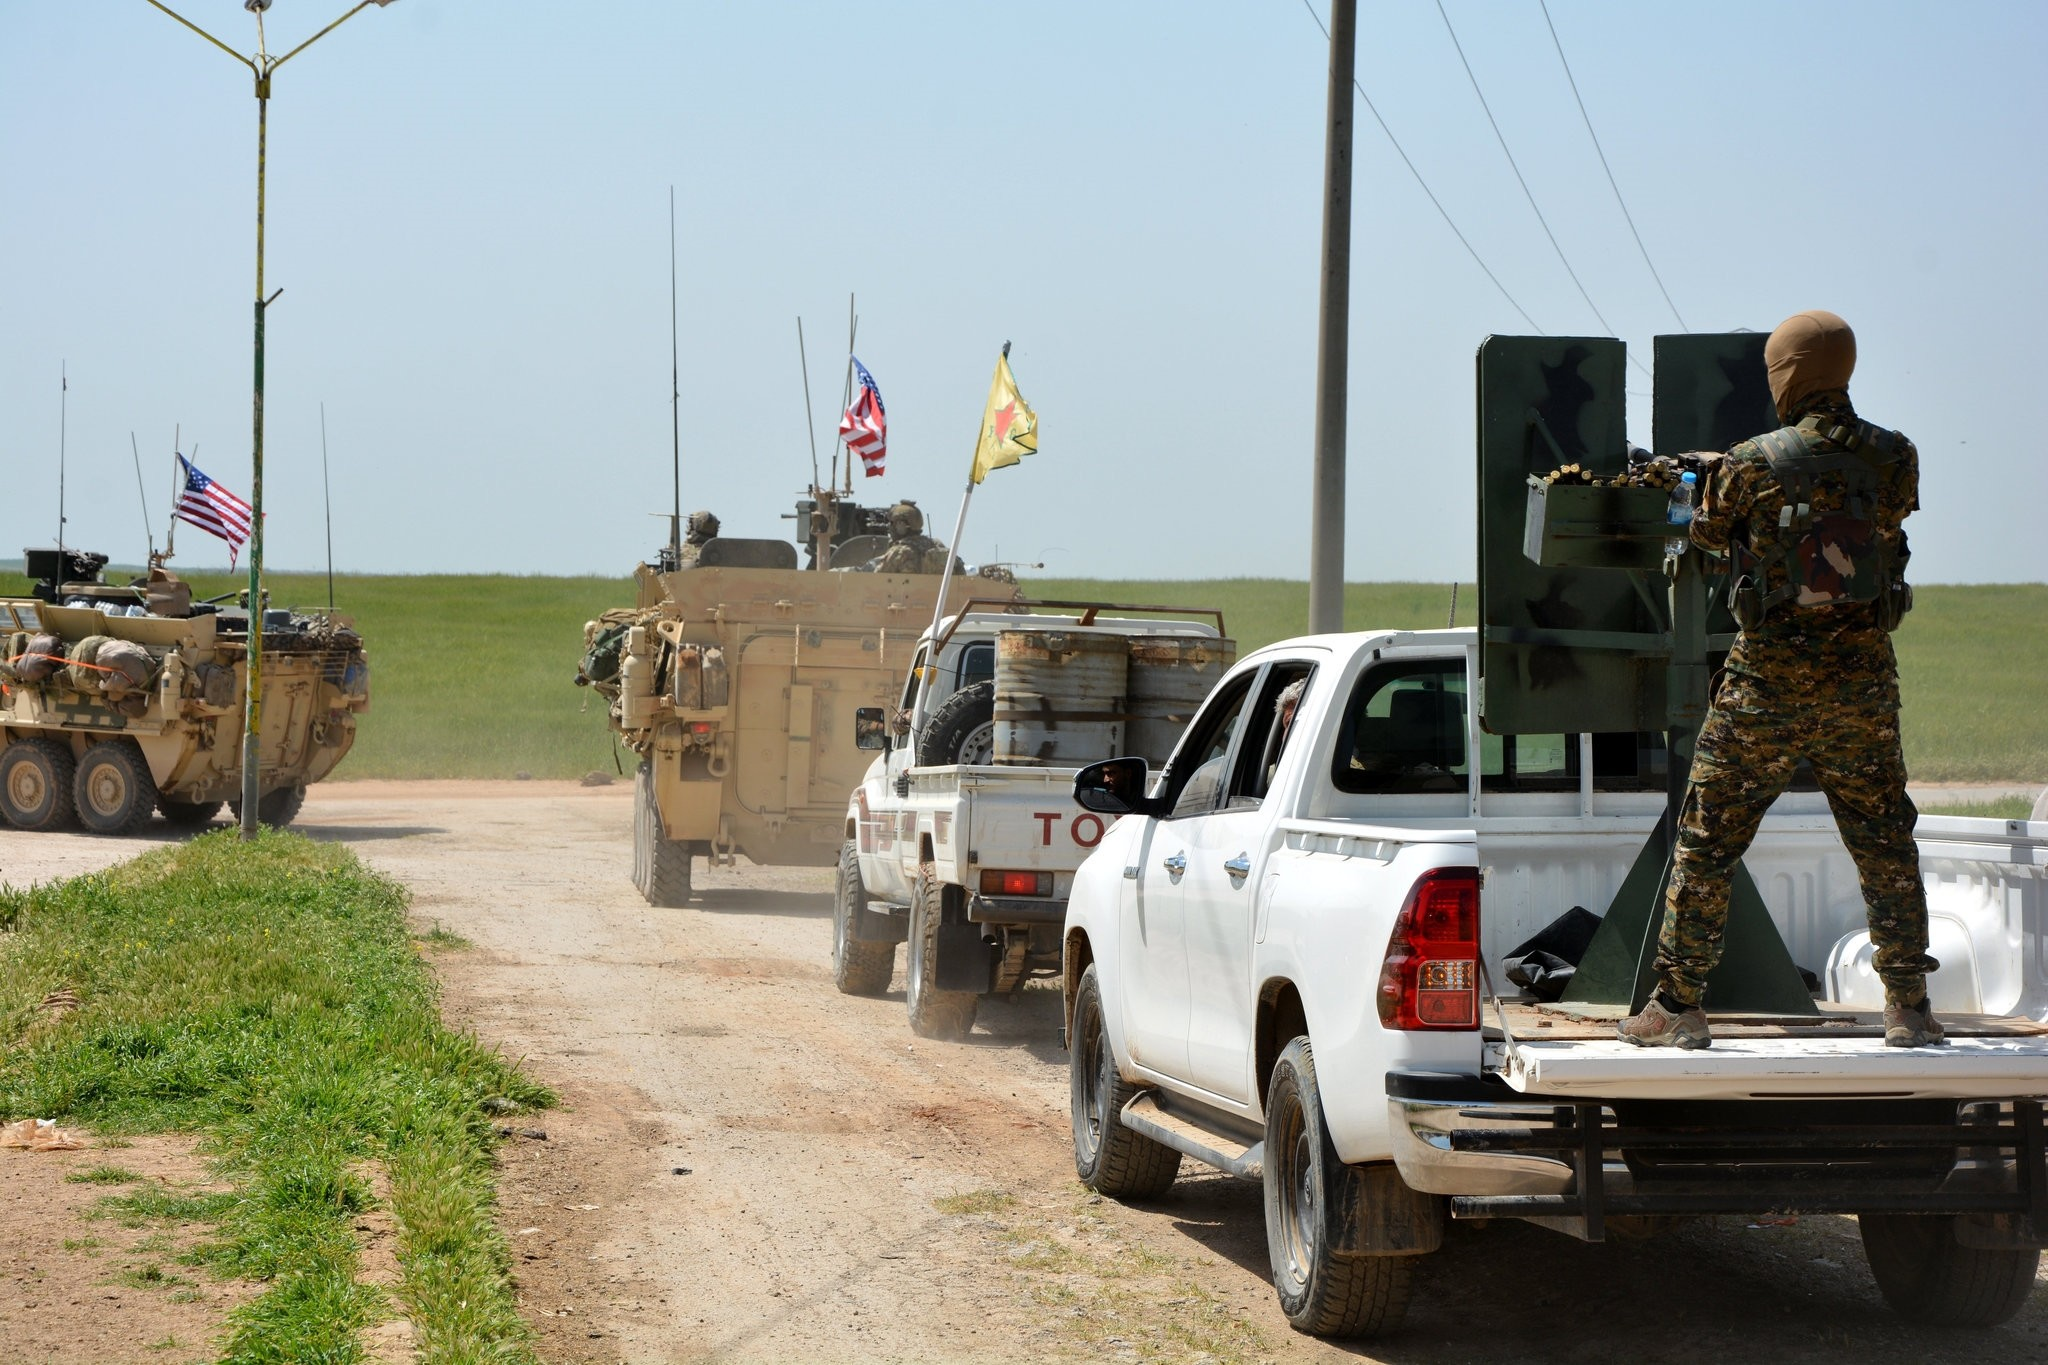 A convoy of U.S. army troops and the Kurdish terrorist group of the People's Protection Units (YPG), a PKK extension, patroling near the Syrian town of al-Darbasiyah at the Syrian-Turkish border, April 29. (FILE Photo)